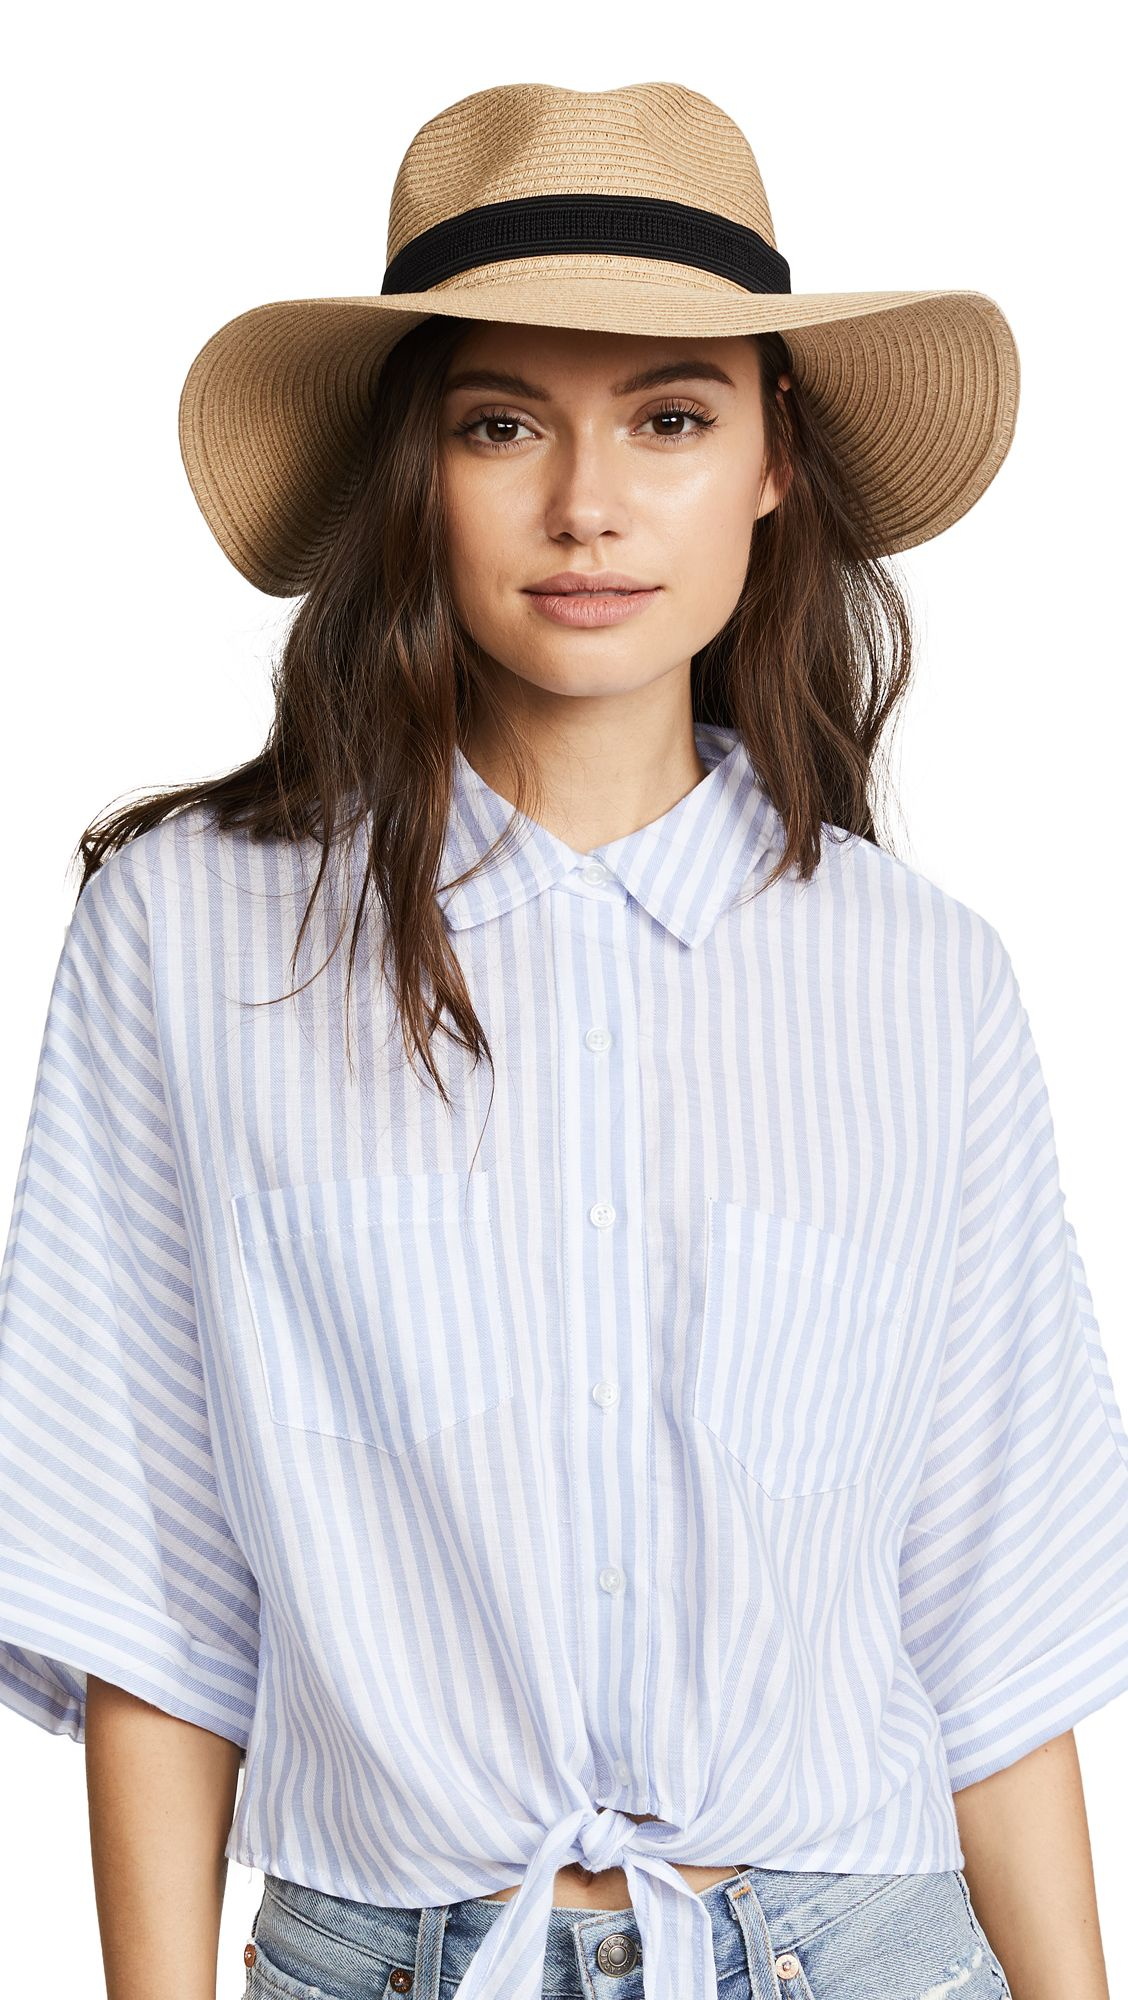 c1dcf1b5586e3 MADEWELL PACKABLE MESA STRAW HAT.  madewell